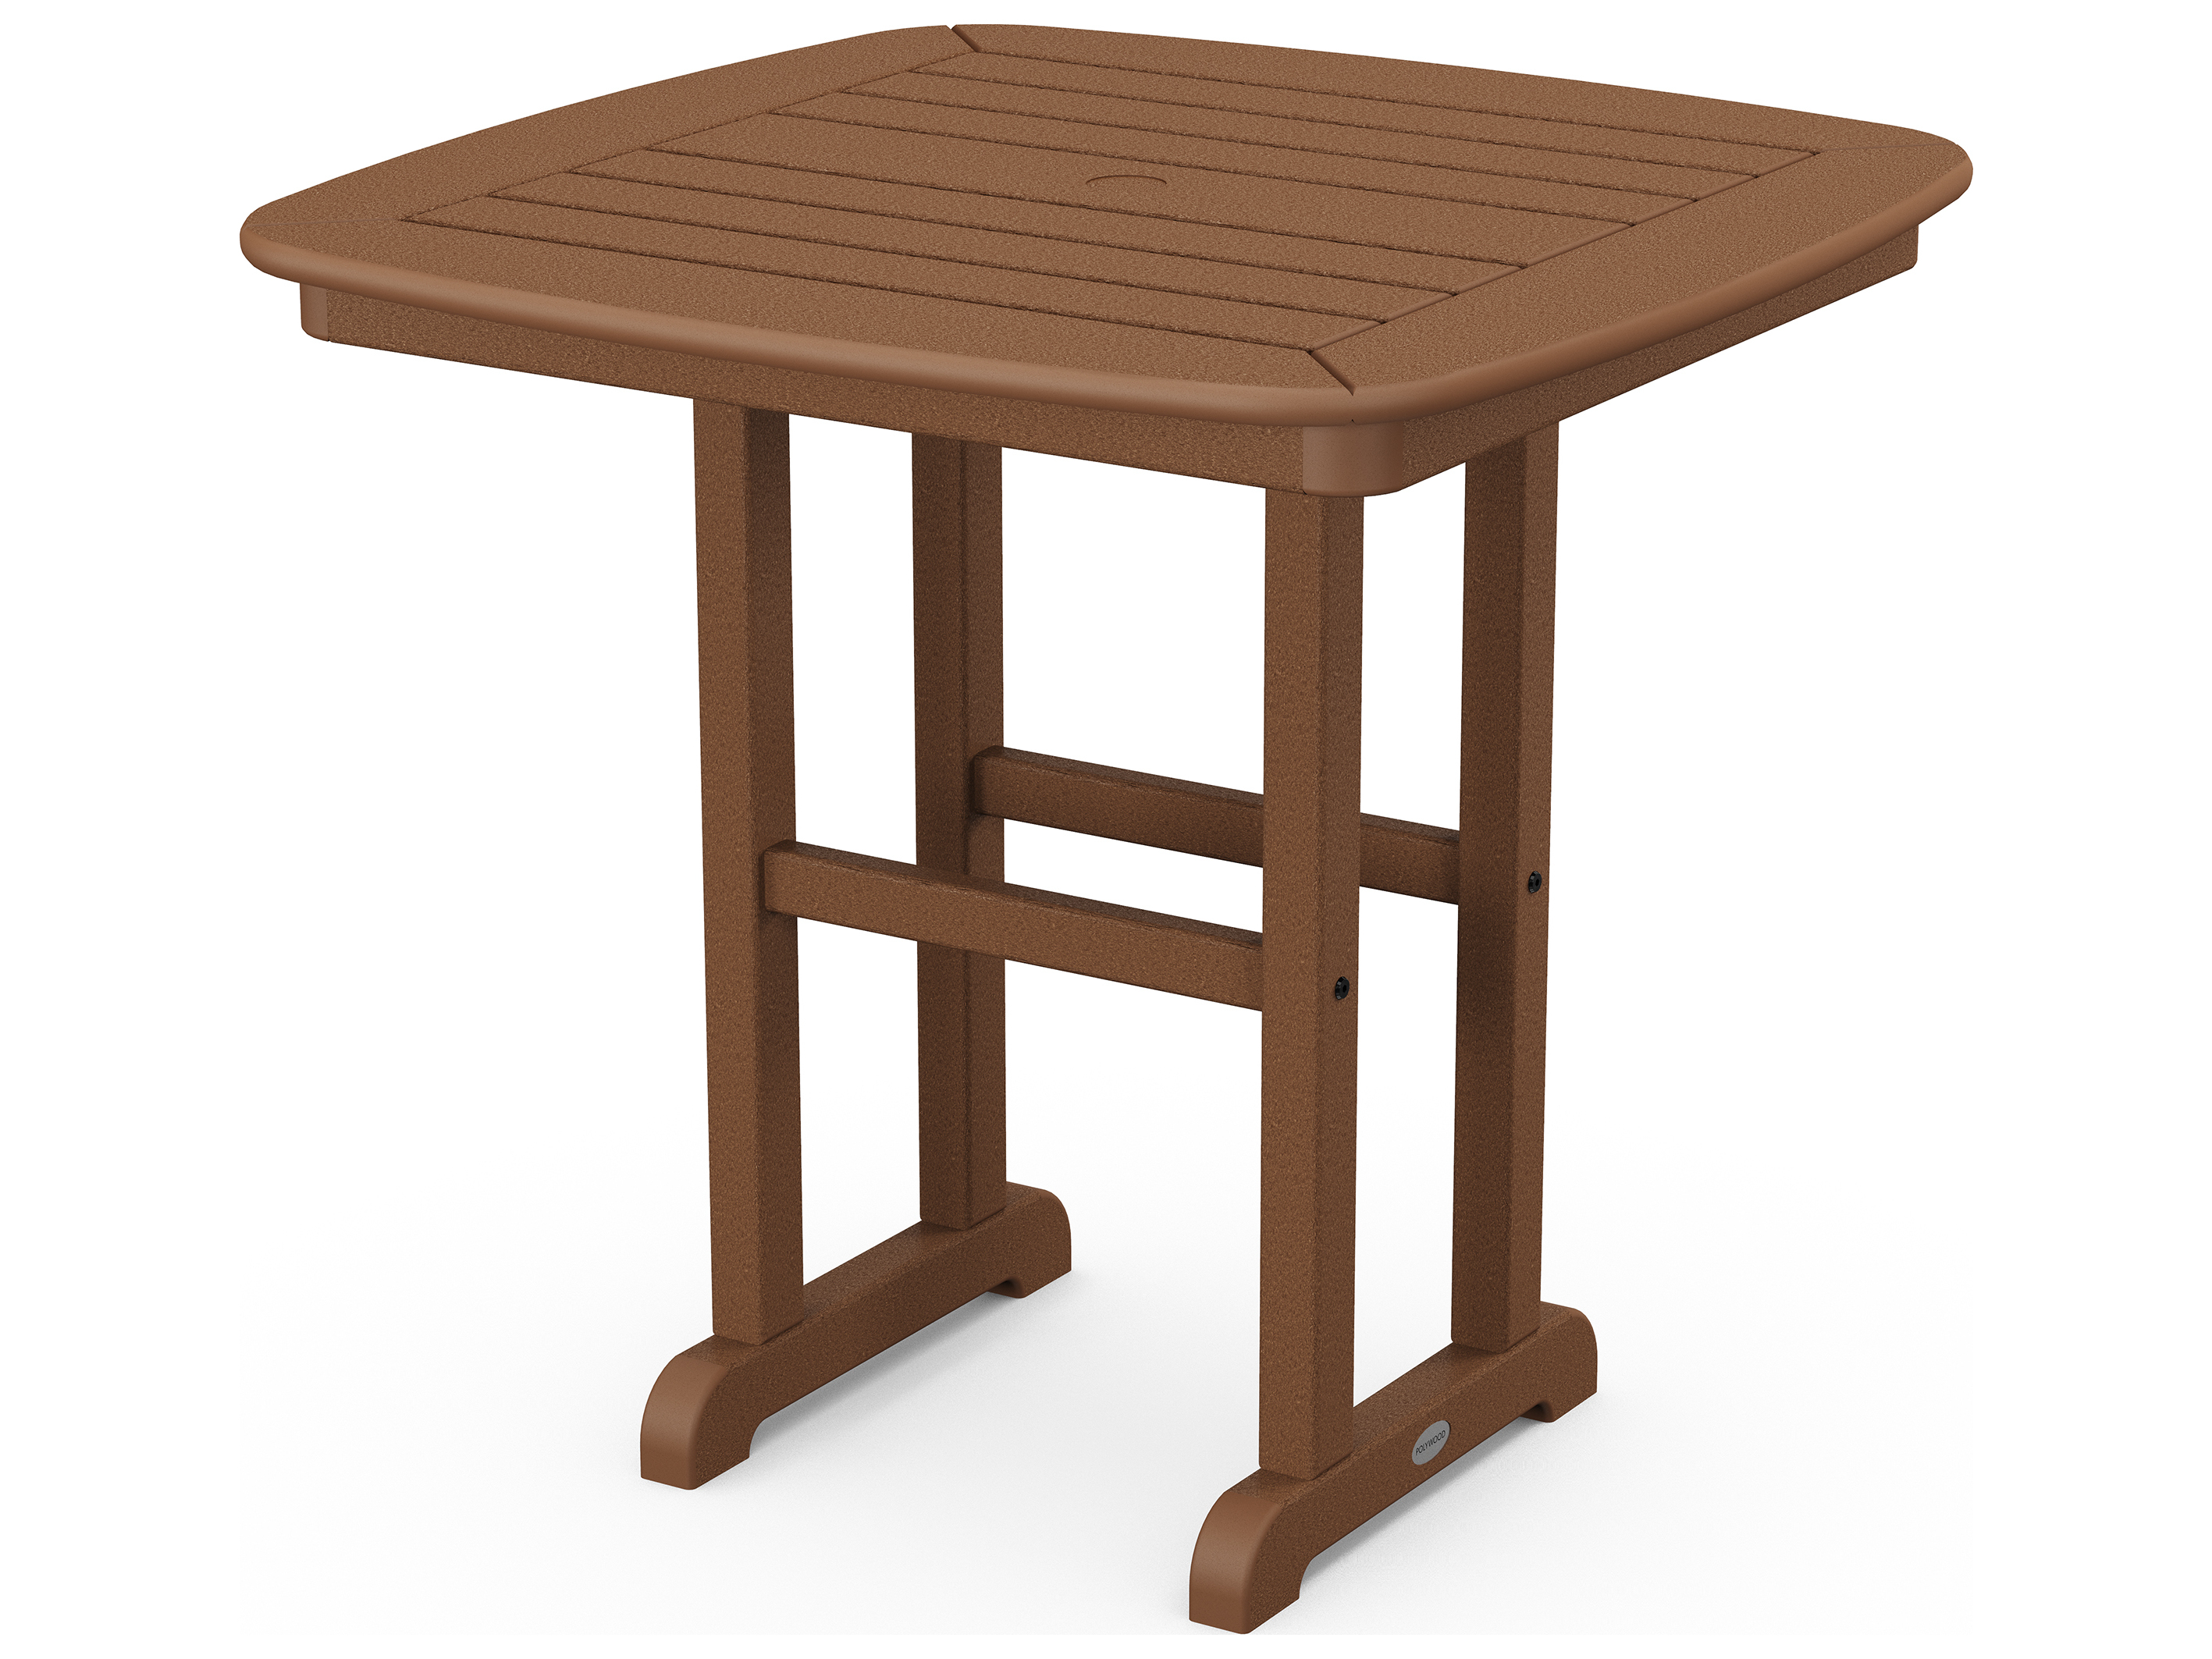 polywood nautical recycled plastic 31 square dining table